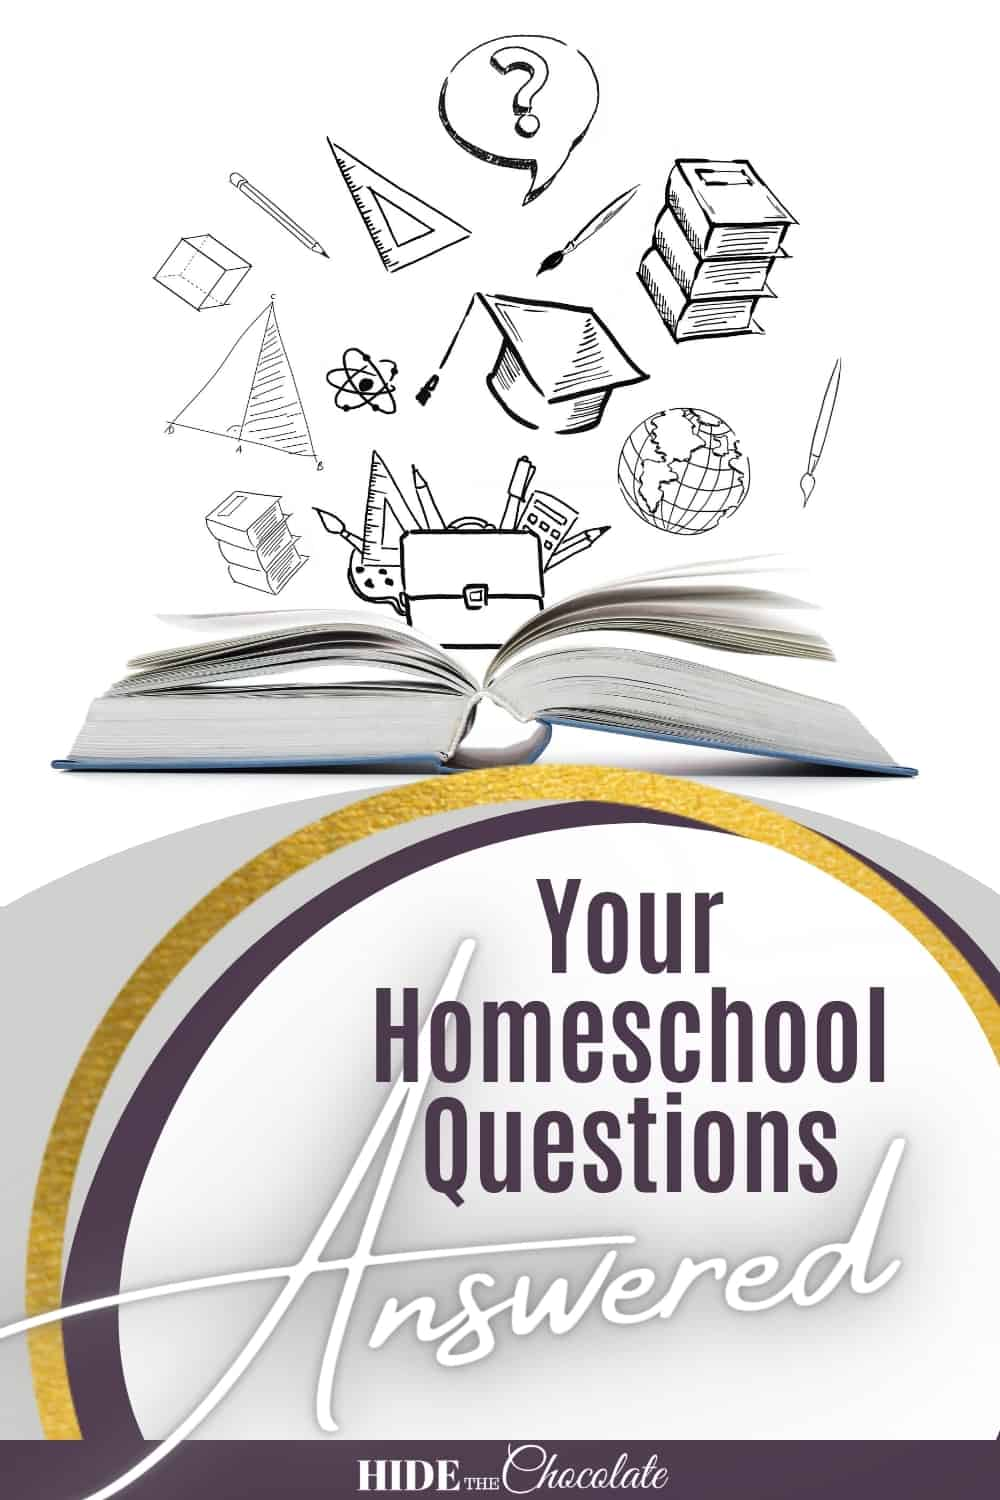 Your Questions Answered on How To Start Homeschooling